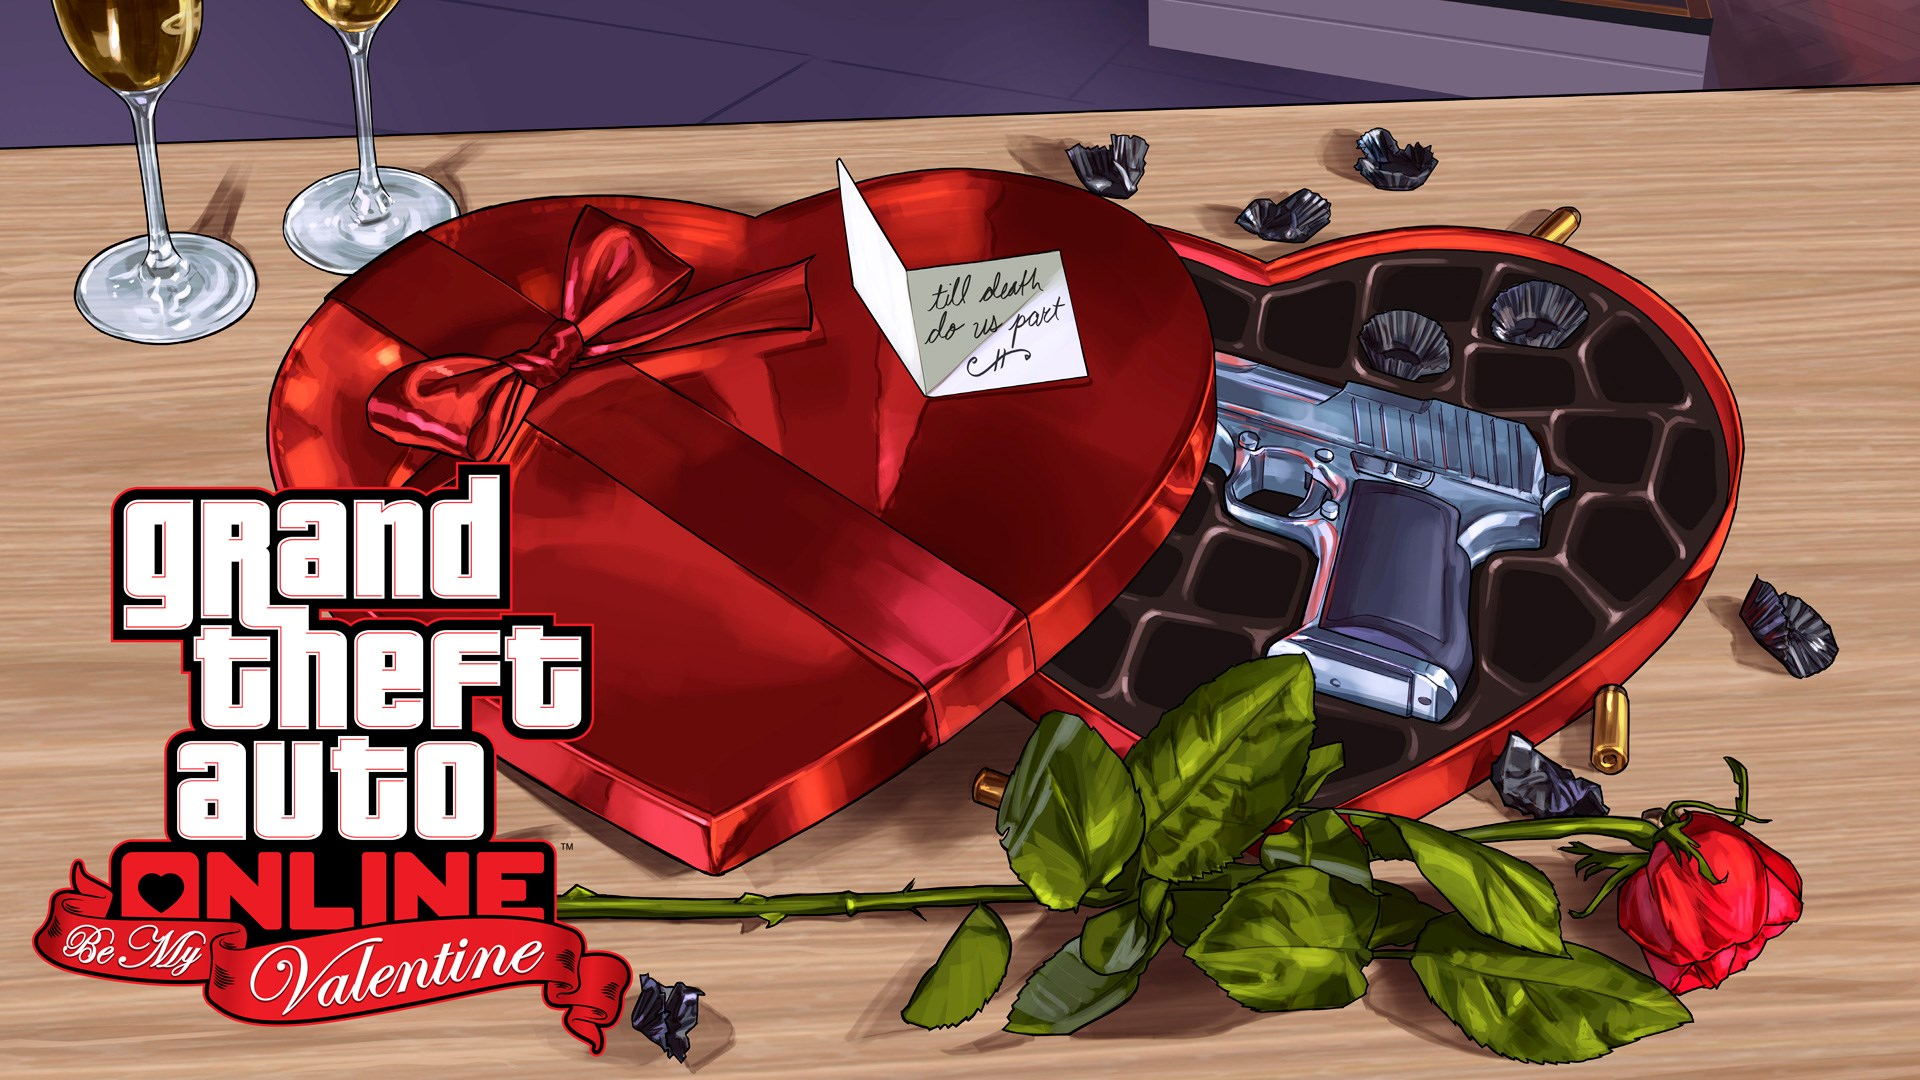 Coy-Gordon-free-download-pictures-of-Grand-Theft-Auto-Online-1920x1080-px-wallpaper-wp3404247